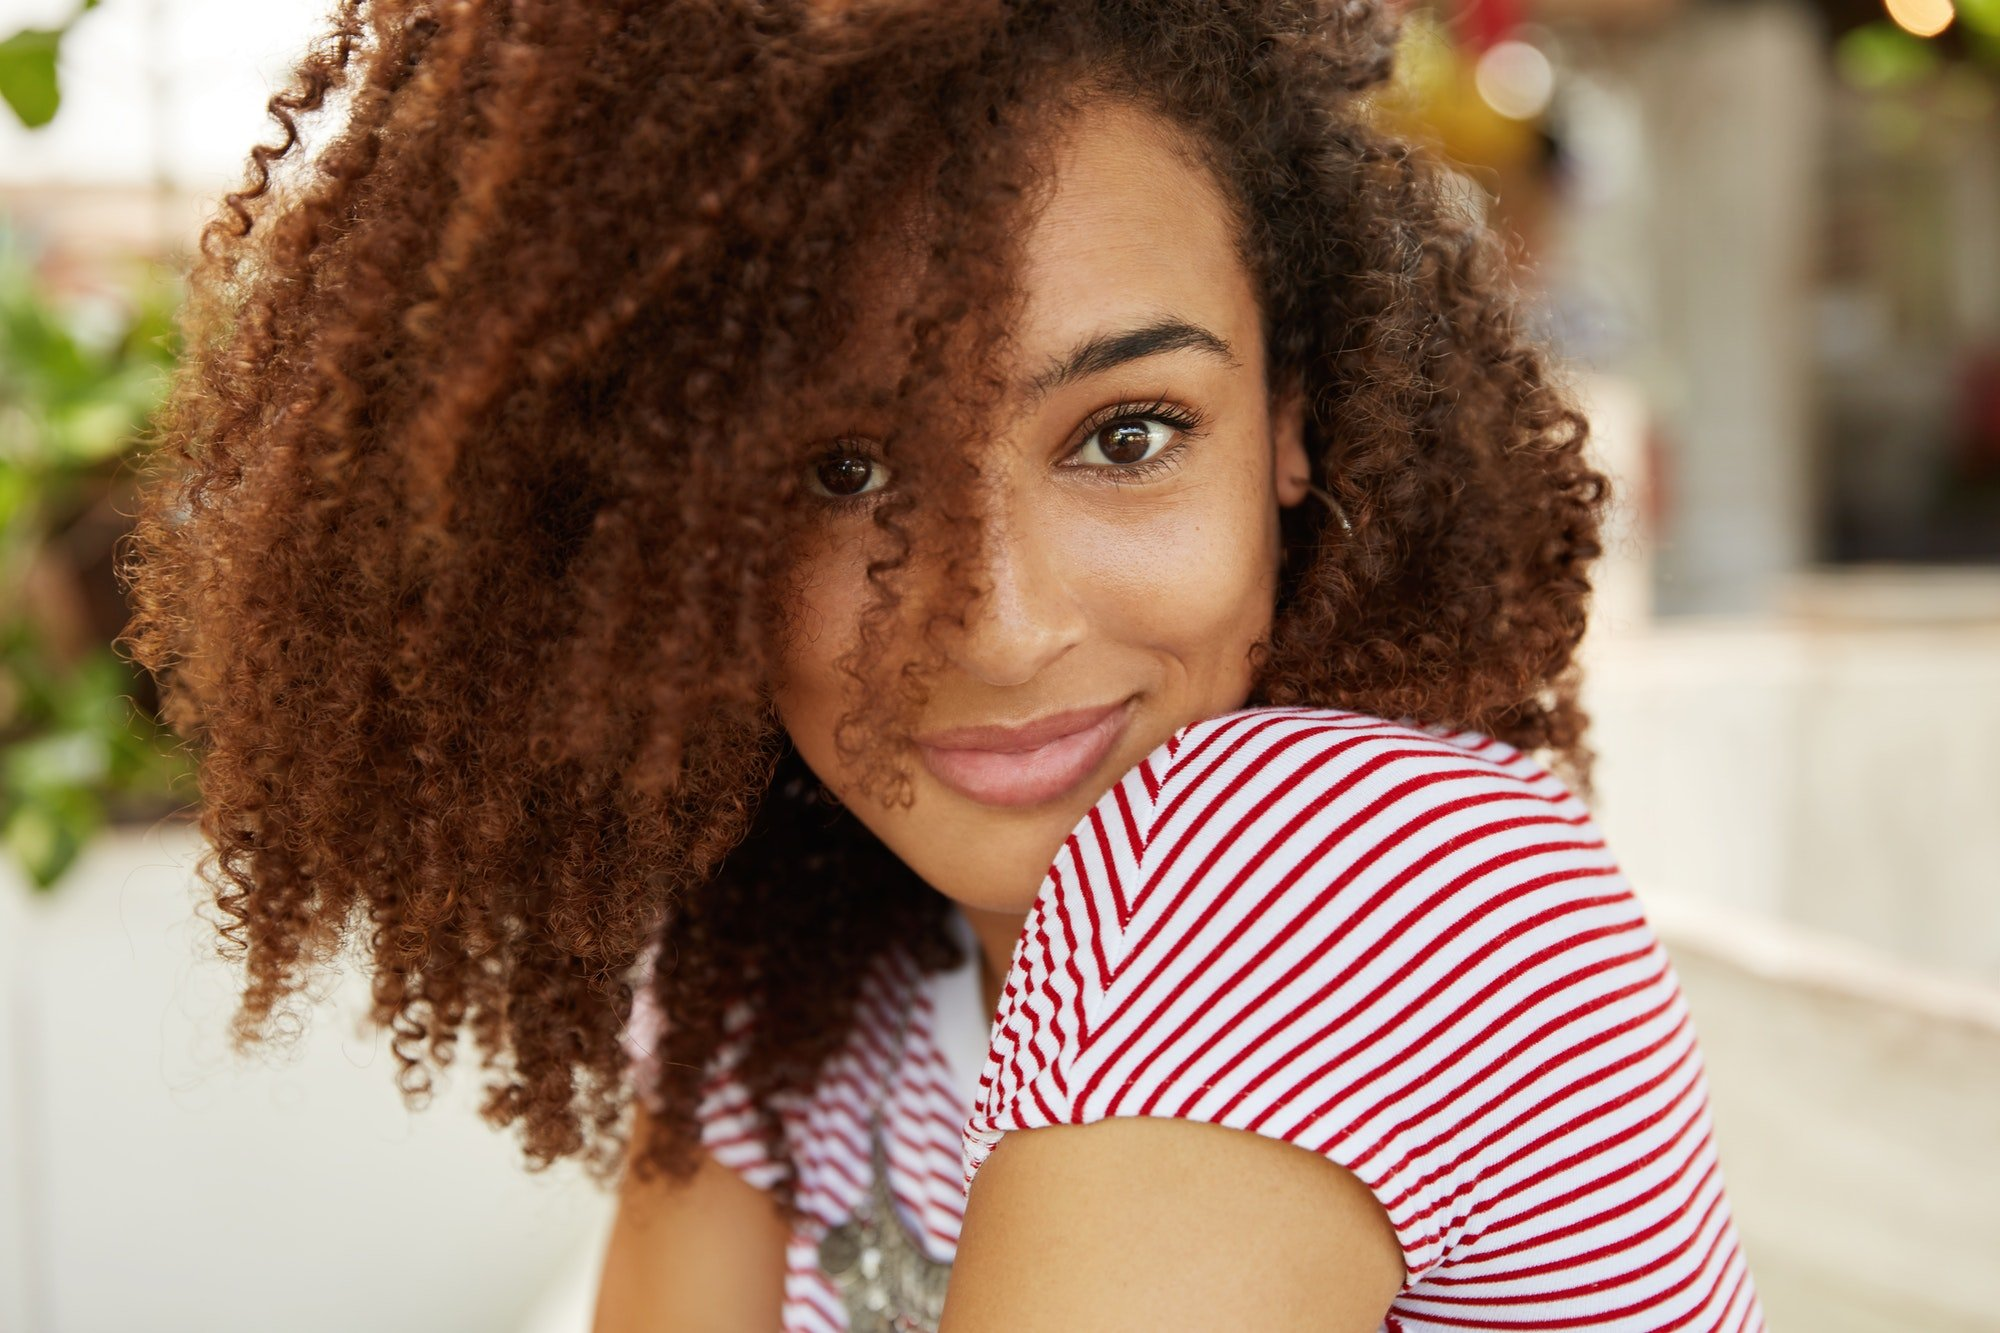 Sideways portrait of stylish female with curly Afro hairstyle and dark skin, being satisfied to achi